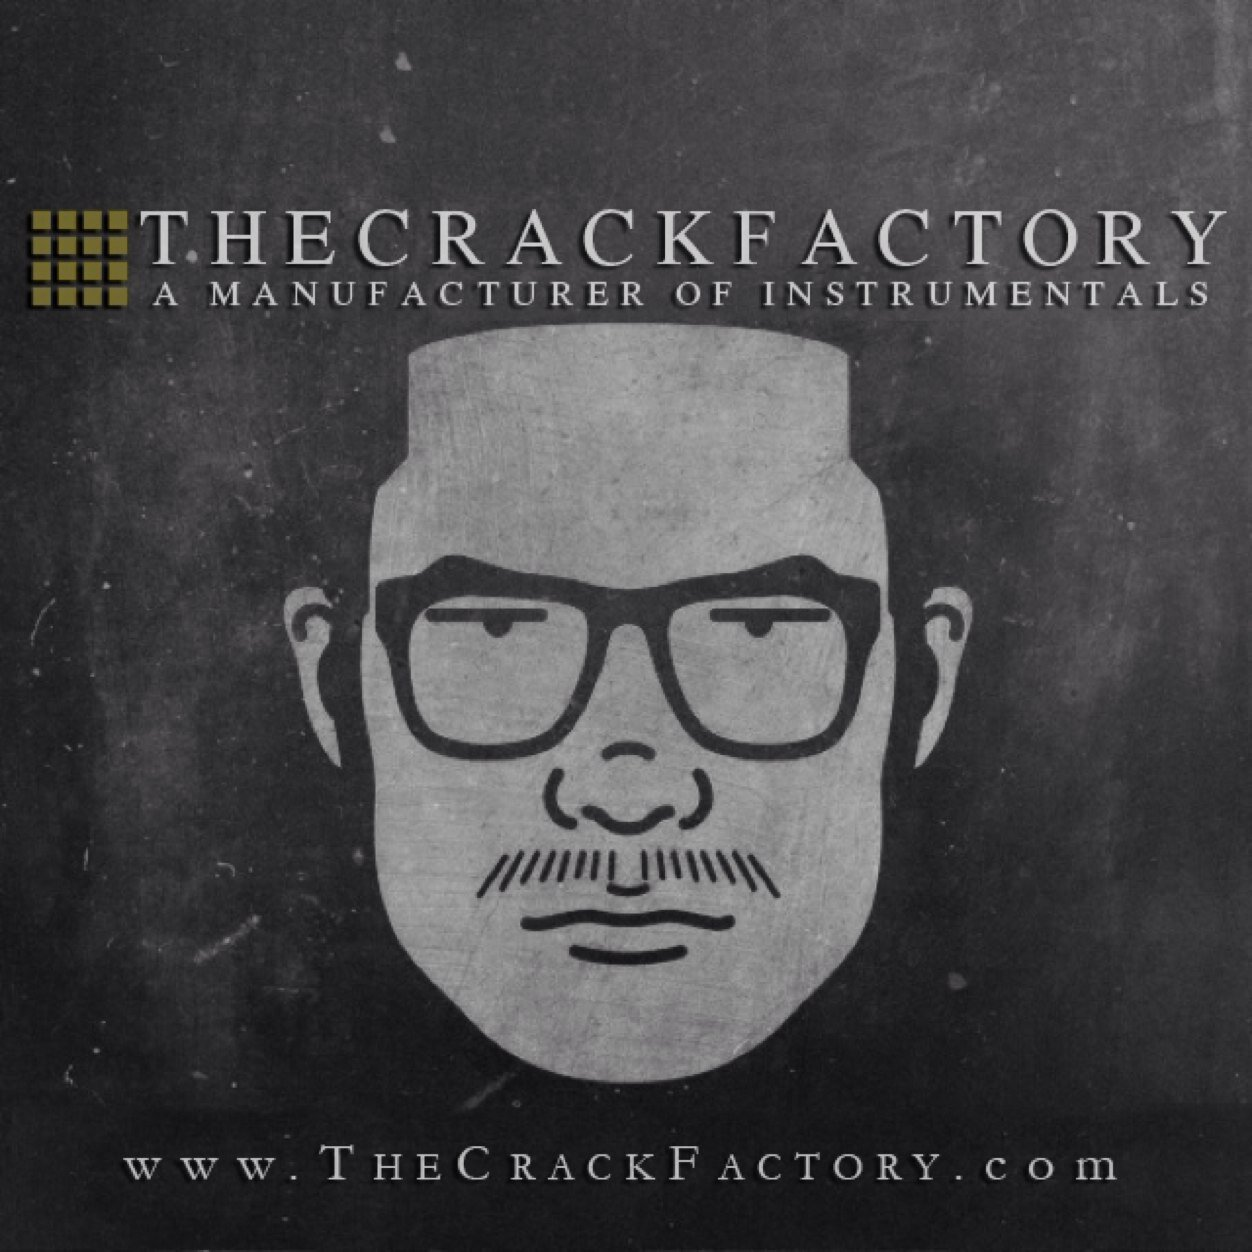 The Crack Factory on Twitter: